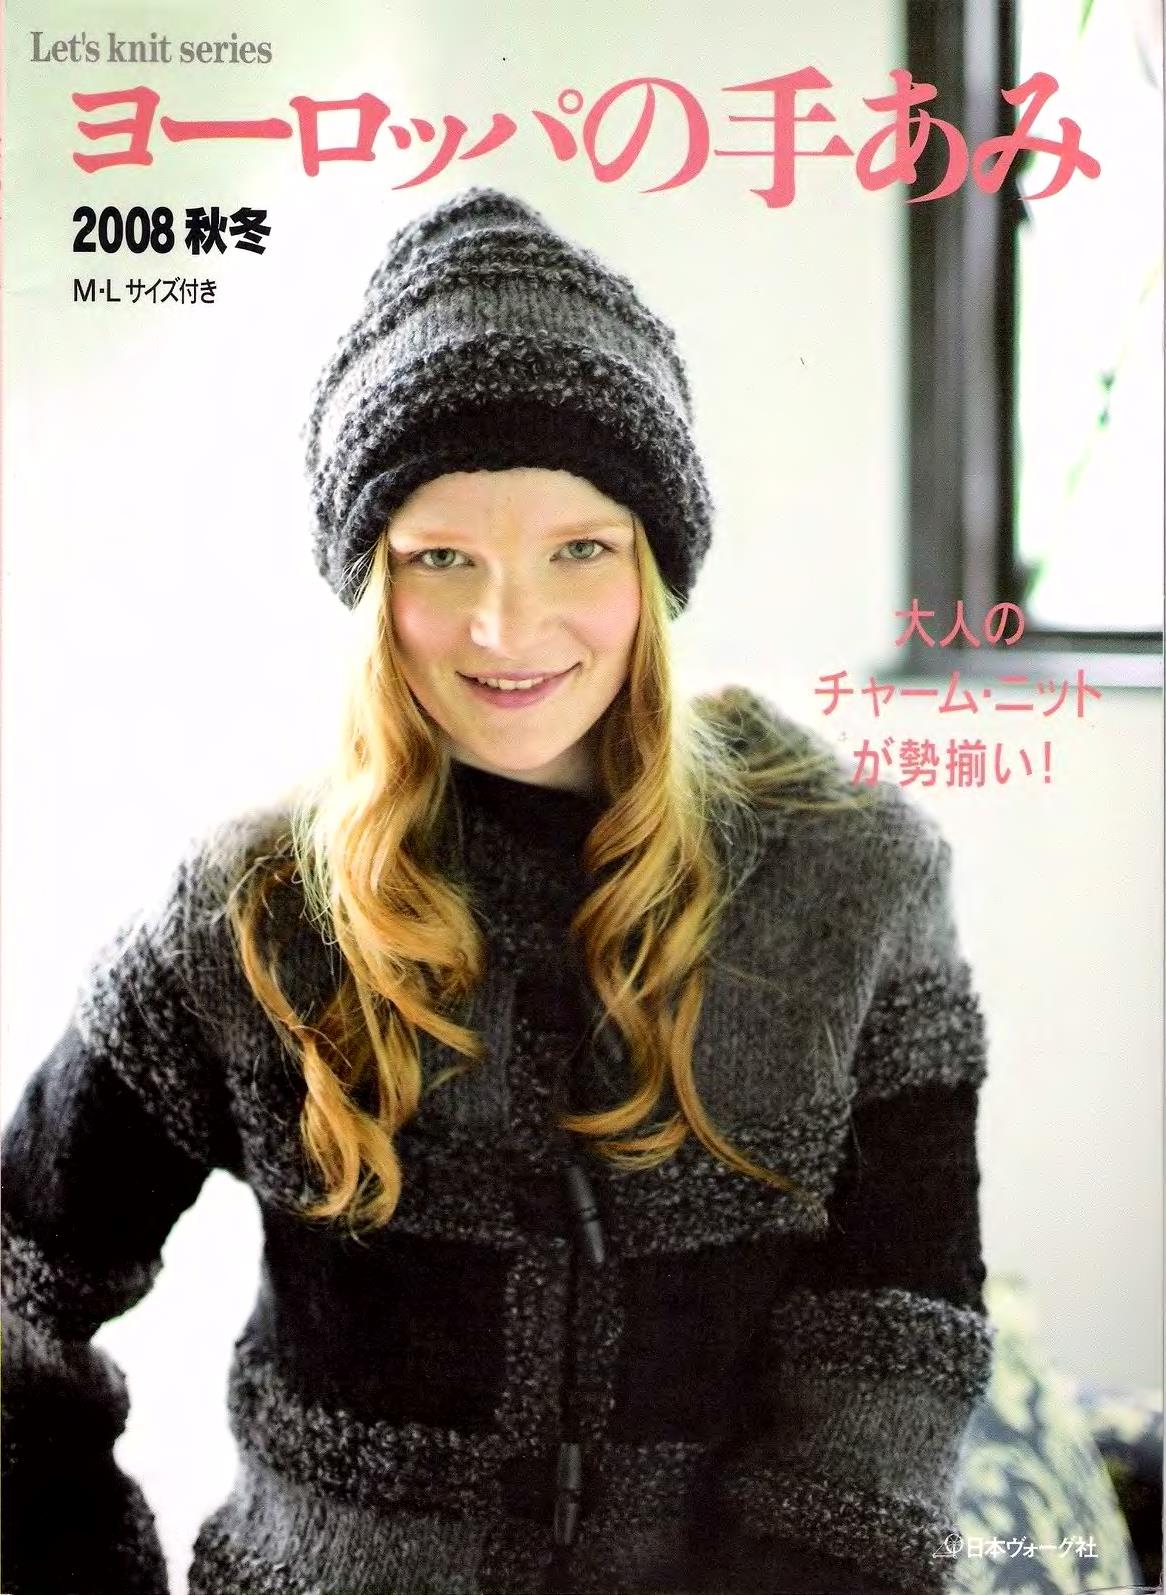 Let's knit series NV4375 2008 M-L sp-kr_1